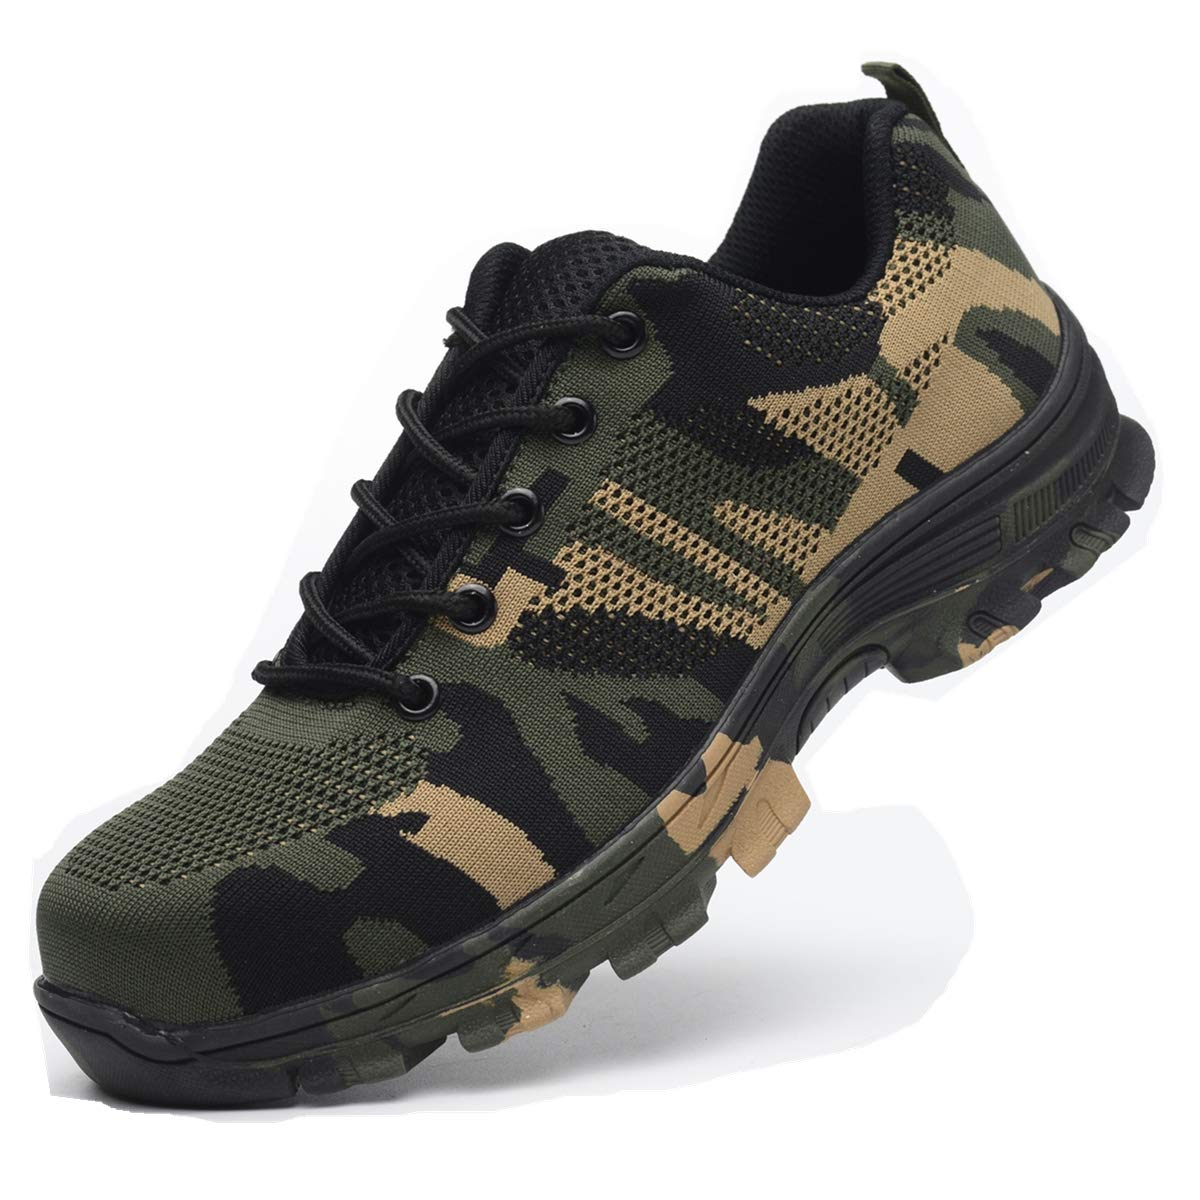 Luolocsn Work Steel Toe Shoes Camo Safety Shoes for Men and Women Lightweight Industrial & Construction Shoe